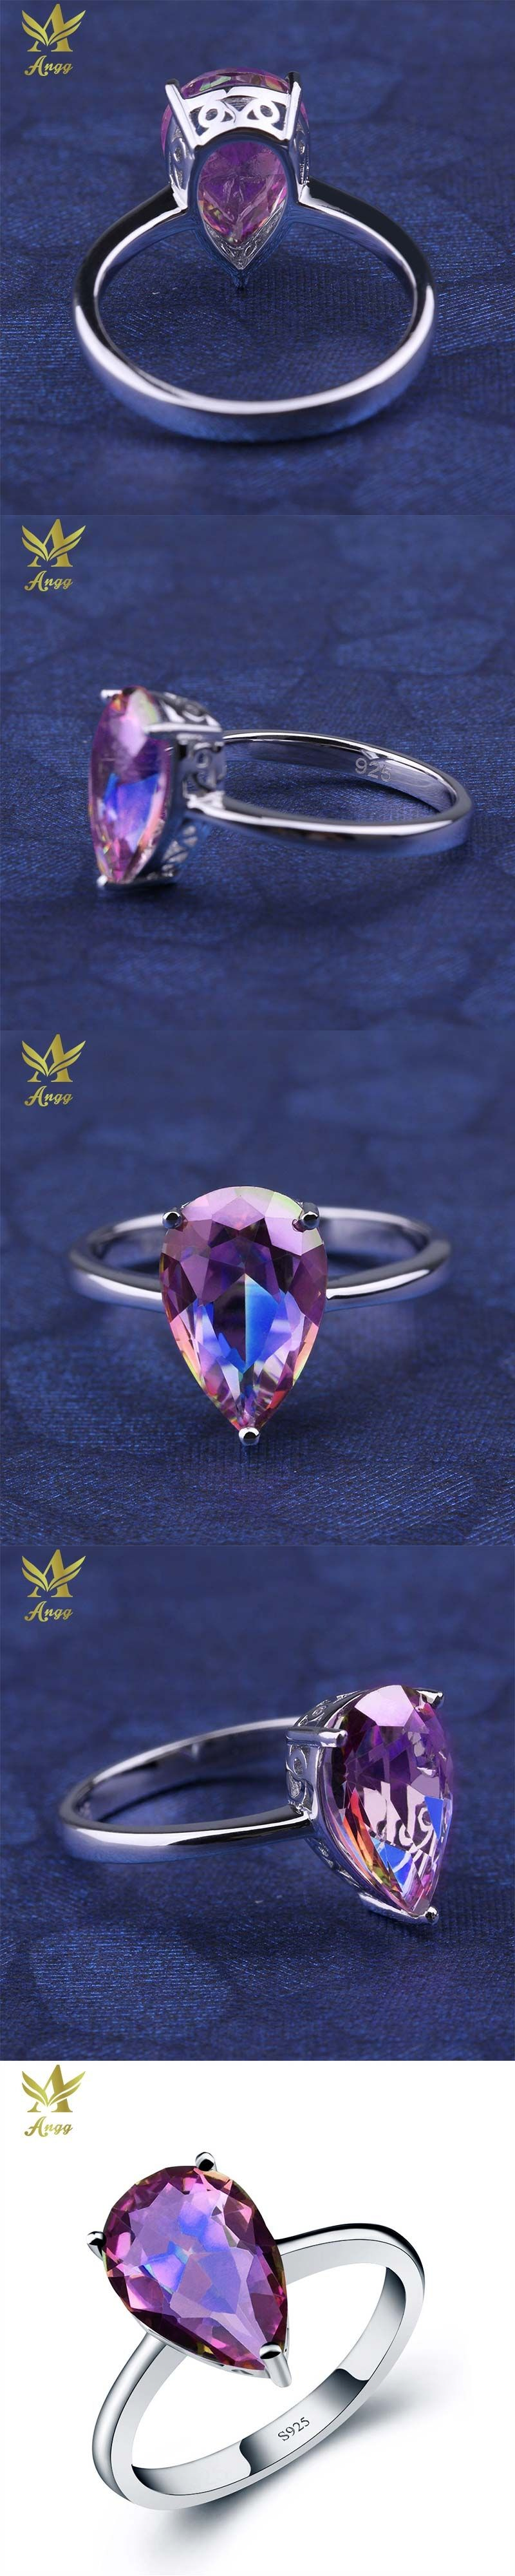 purple green o mystic sterling fire is silver topaz itm solitaire rings image loading gemstone ring